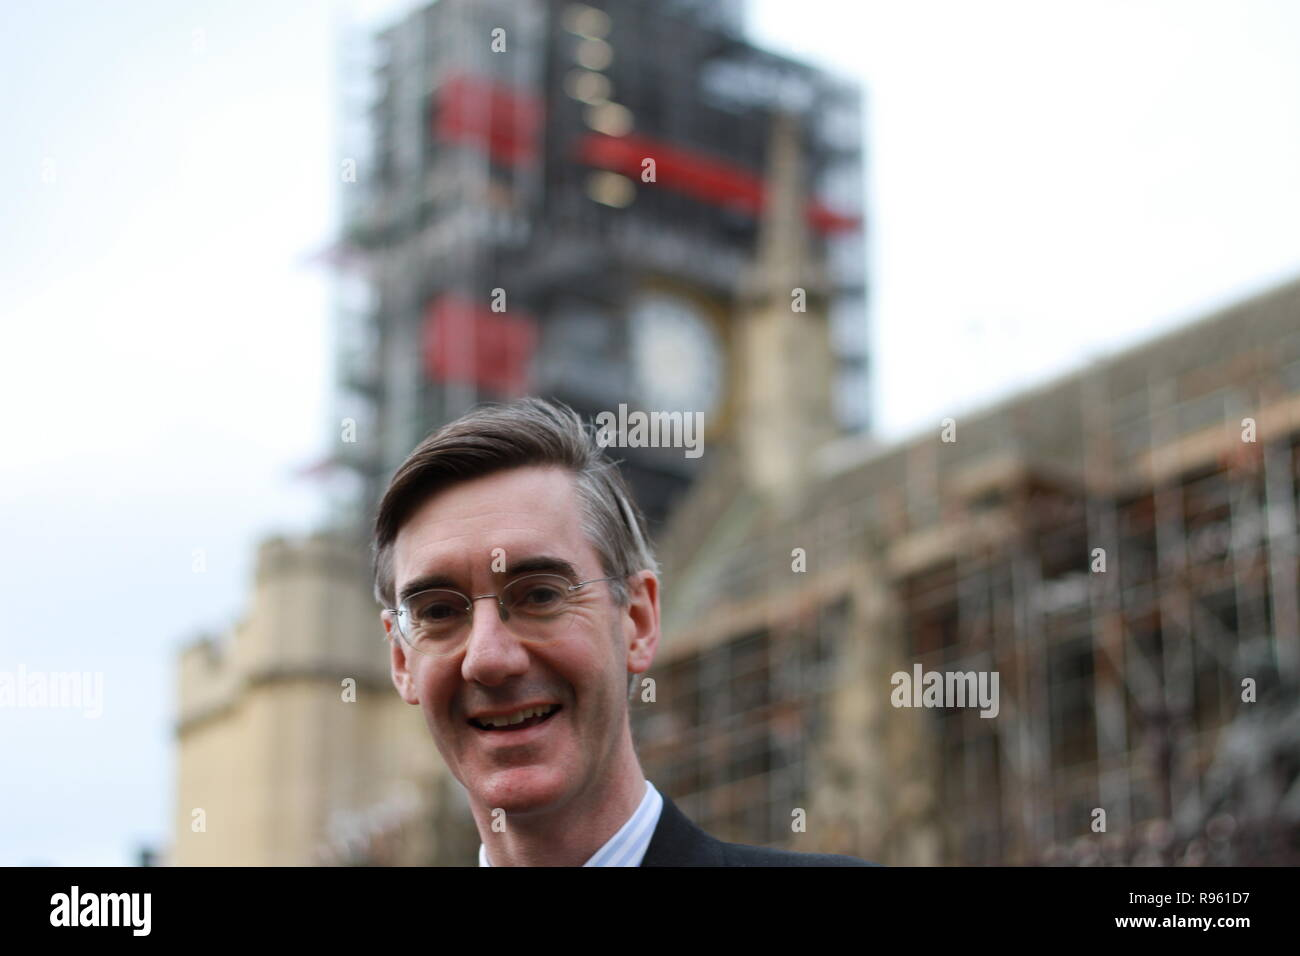 Jacob Rees-Mogg standing outside parliament, Westminster, London UK on 17th April 2018. Jacob gave his consent for these photographs to be taken. European research group. ERG. - Stock Image